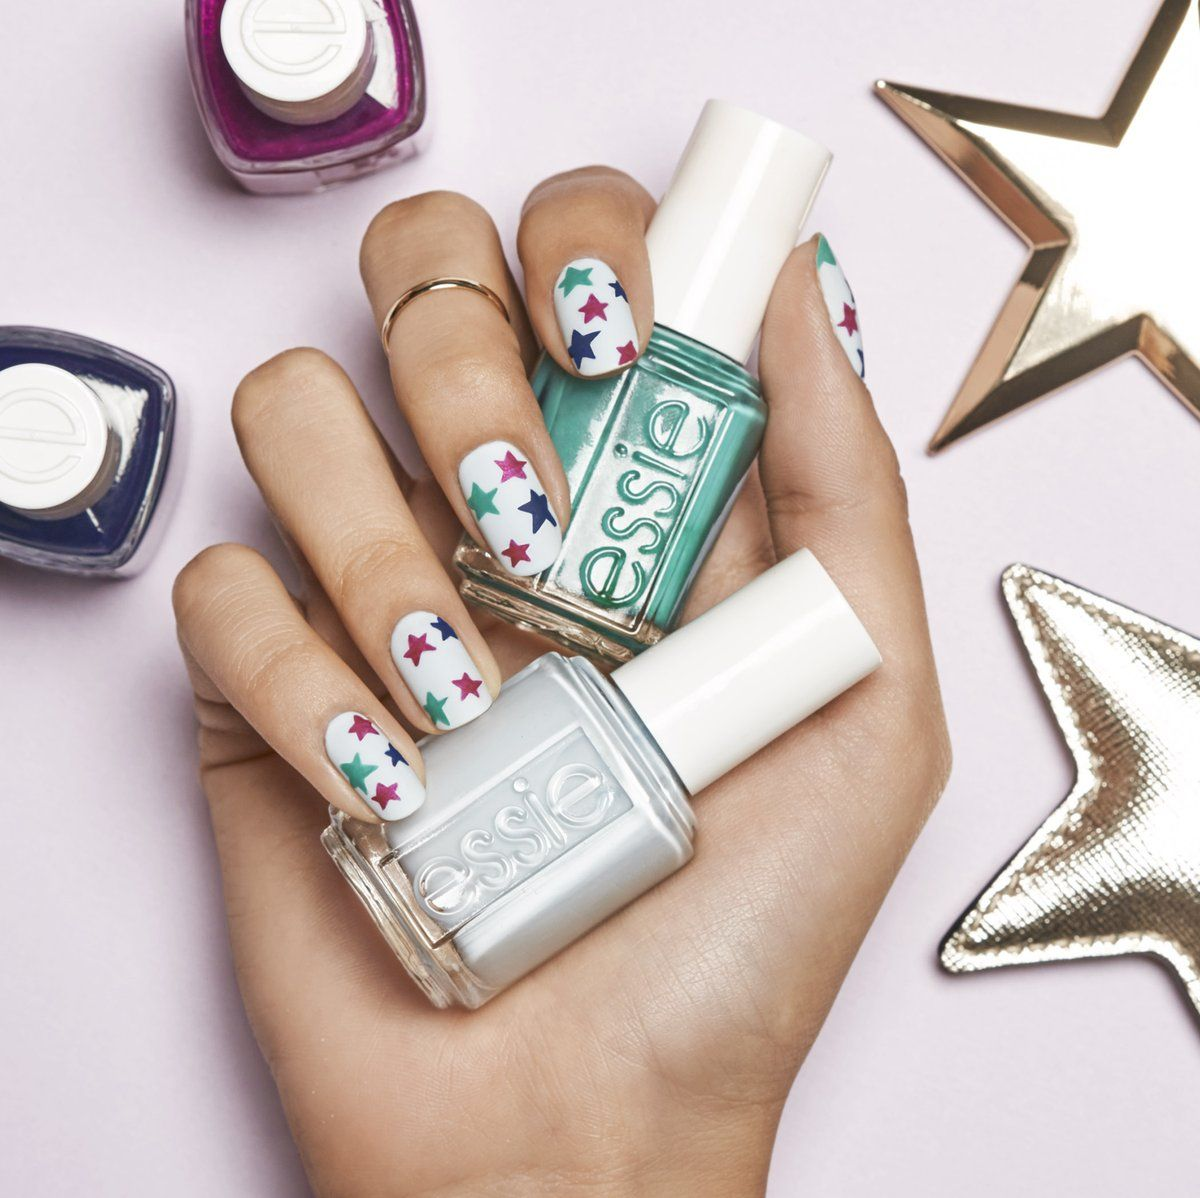 Stars on nails | Tips&Toes | Pinterest | Stud nails